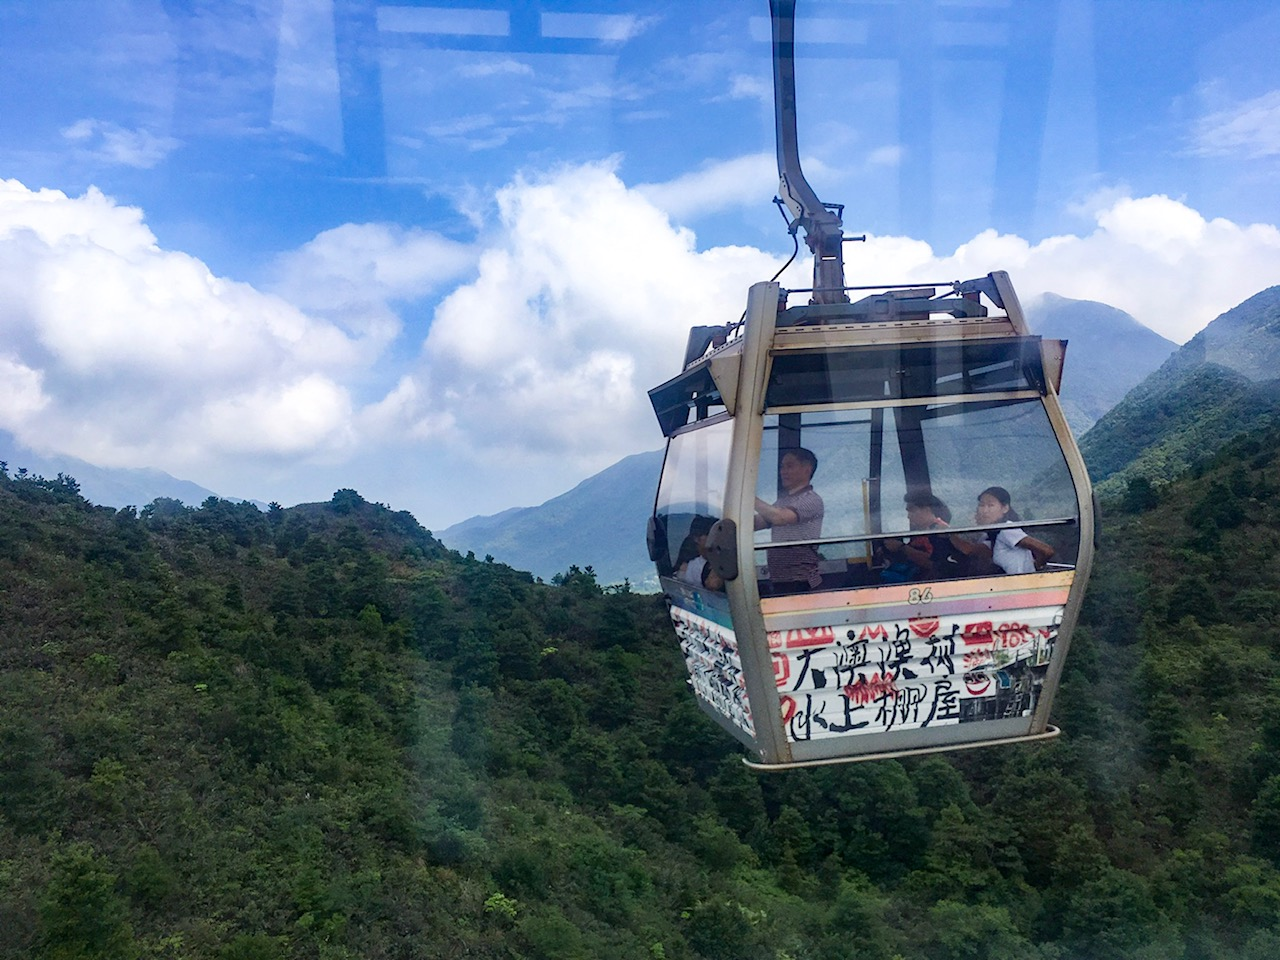 Ngong cable car in Hong Kong, part of our planned itinerary